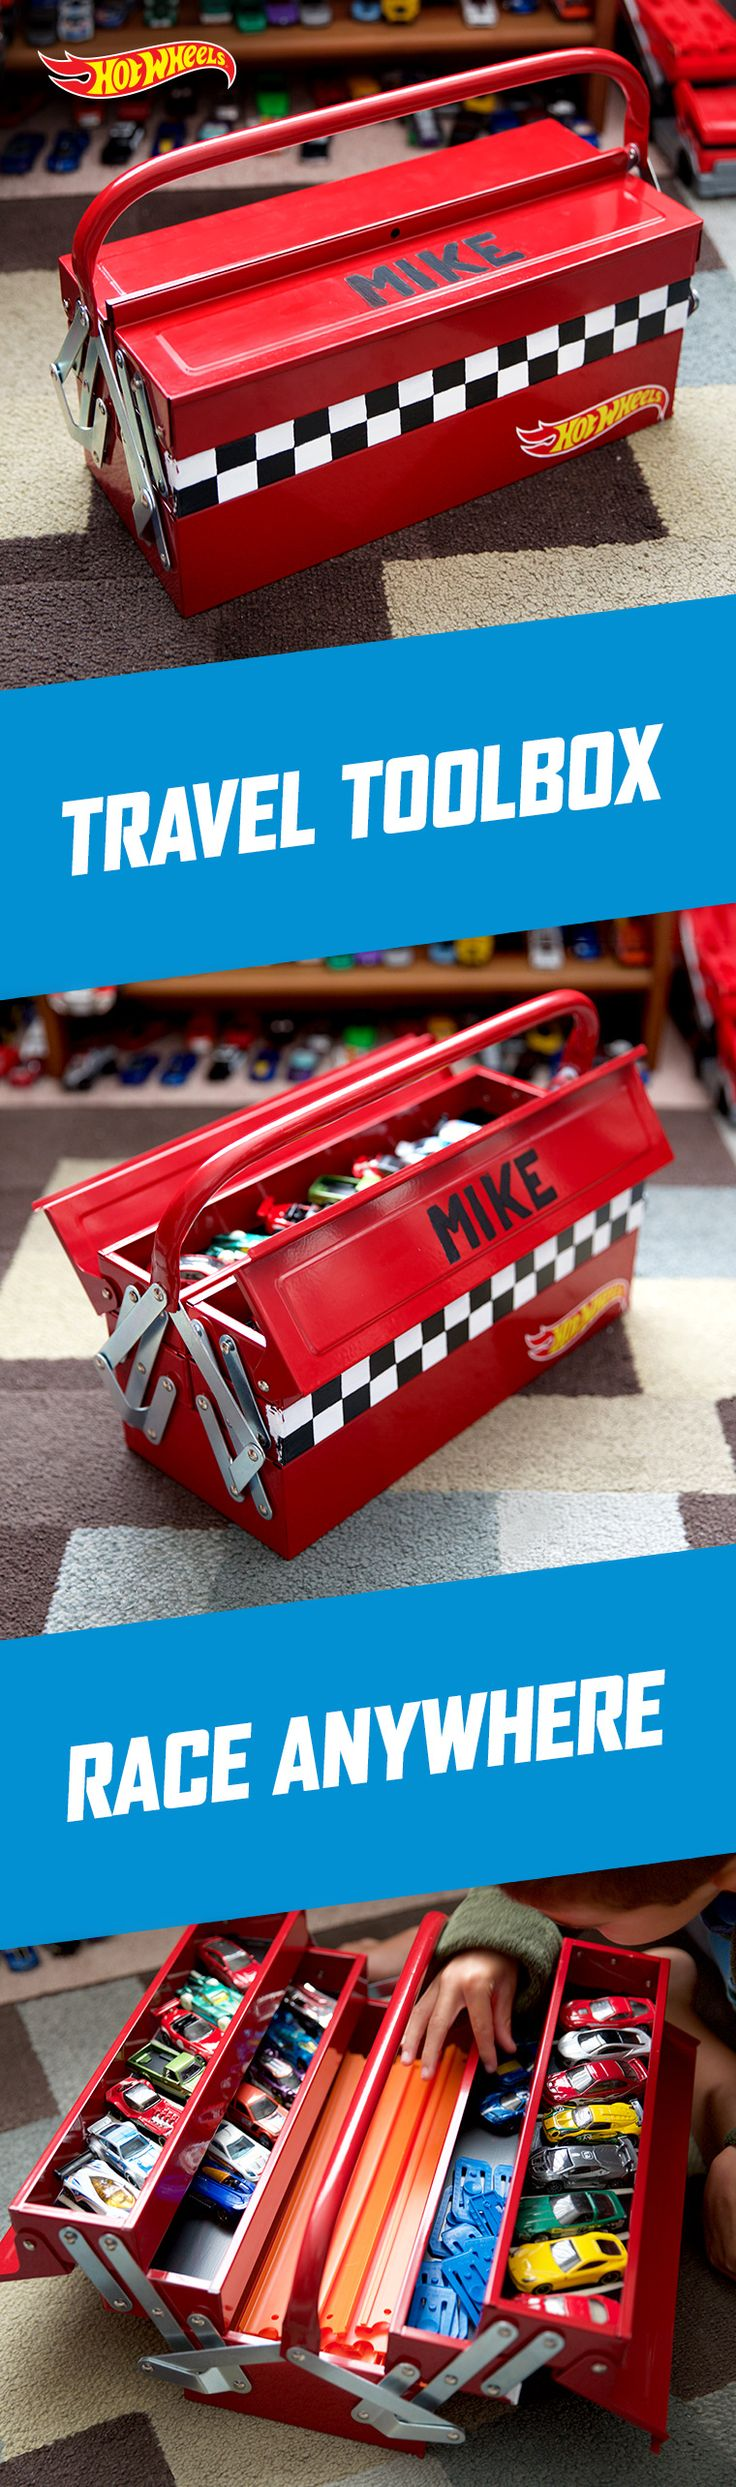 Store your kids' cars and tracks in this DIY toolbox for hours of play when you're on the go. Get Hot Wheels gear to fill this one-of-a kind organizer here.